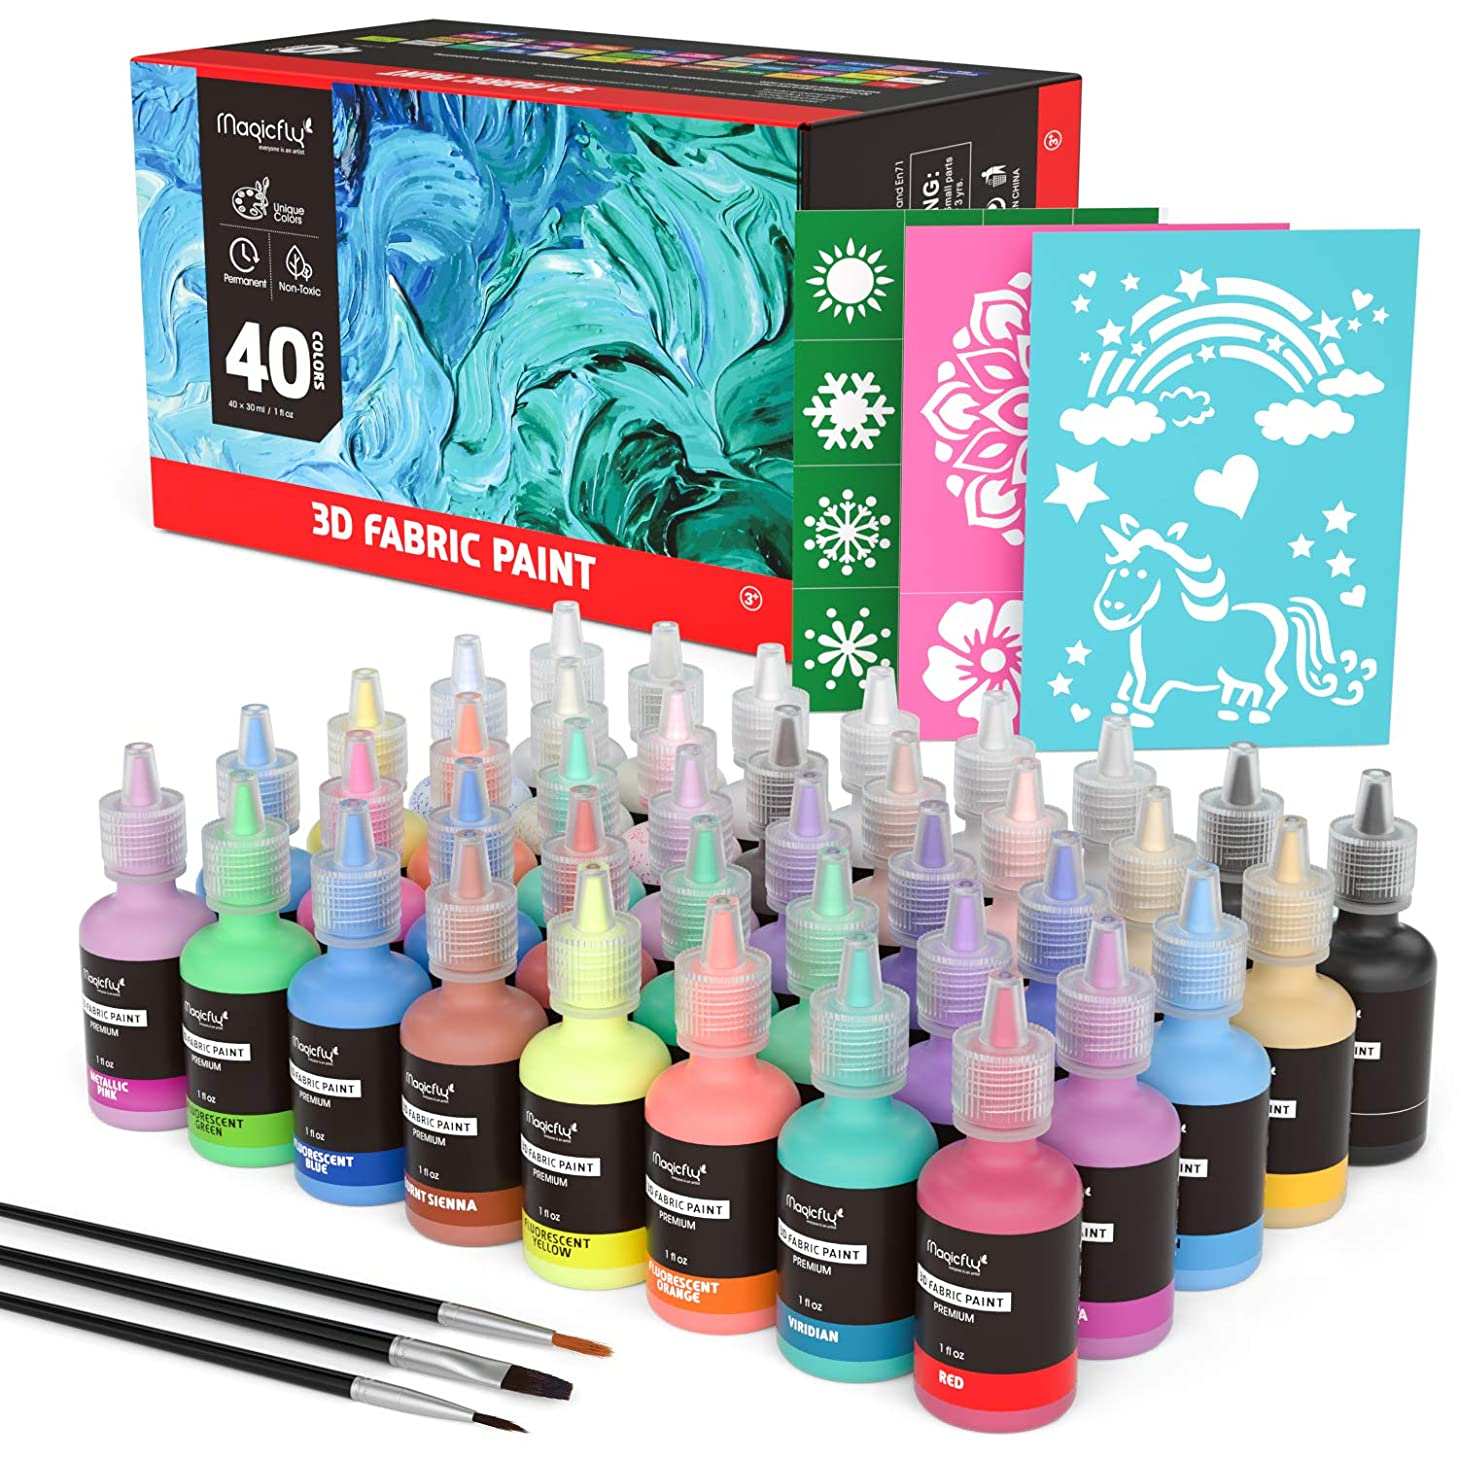 Puffy Paints, Magicfly 40 Colors 3D Fabric Paint with 3 Brushes & Stencils, Permanent Textile Paint with Fluorescent, Glow in The Dark, Glitter, Metallic Colors for Clothing,T-Shirts, Glass and Wood